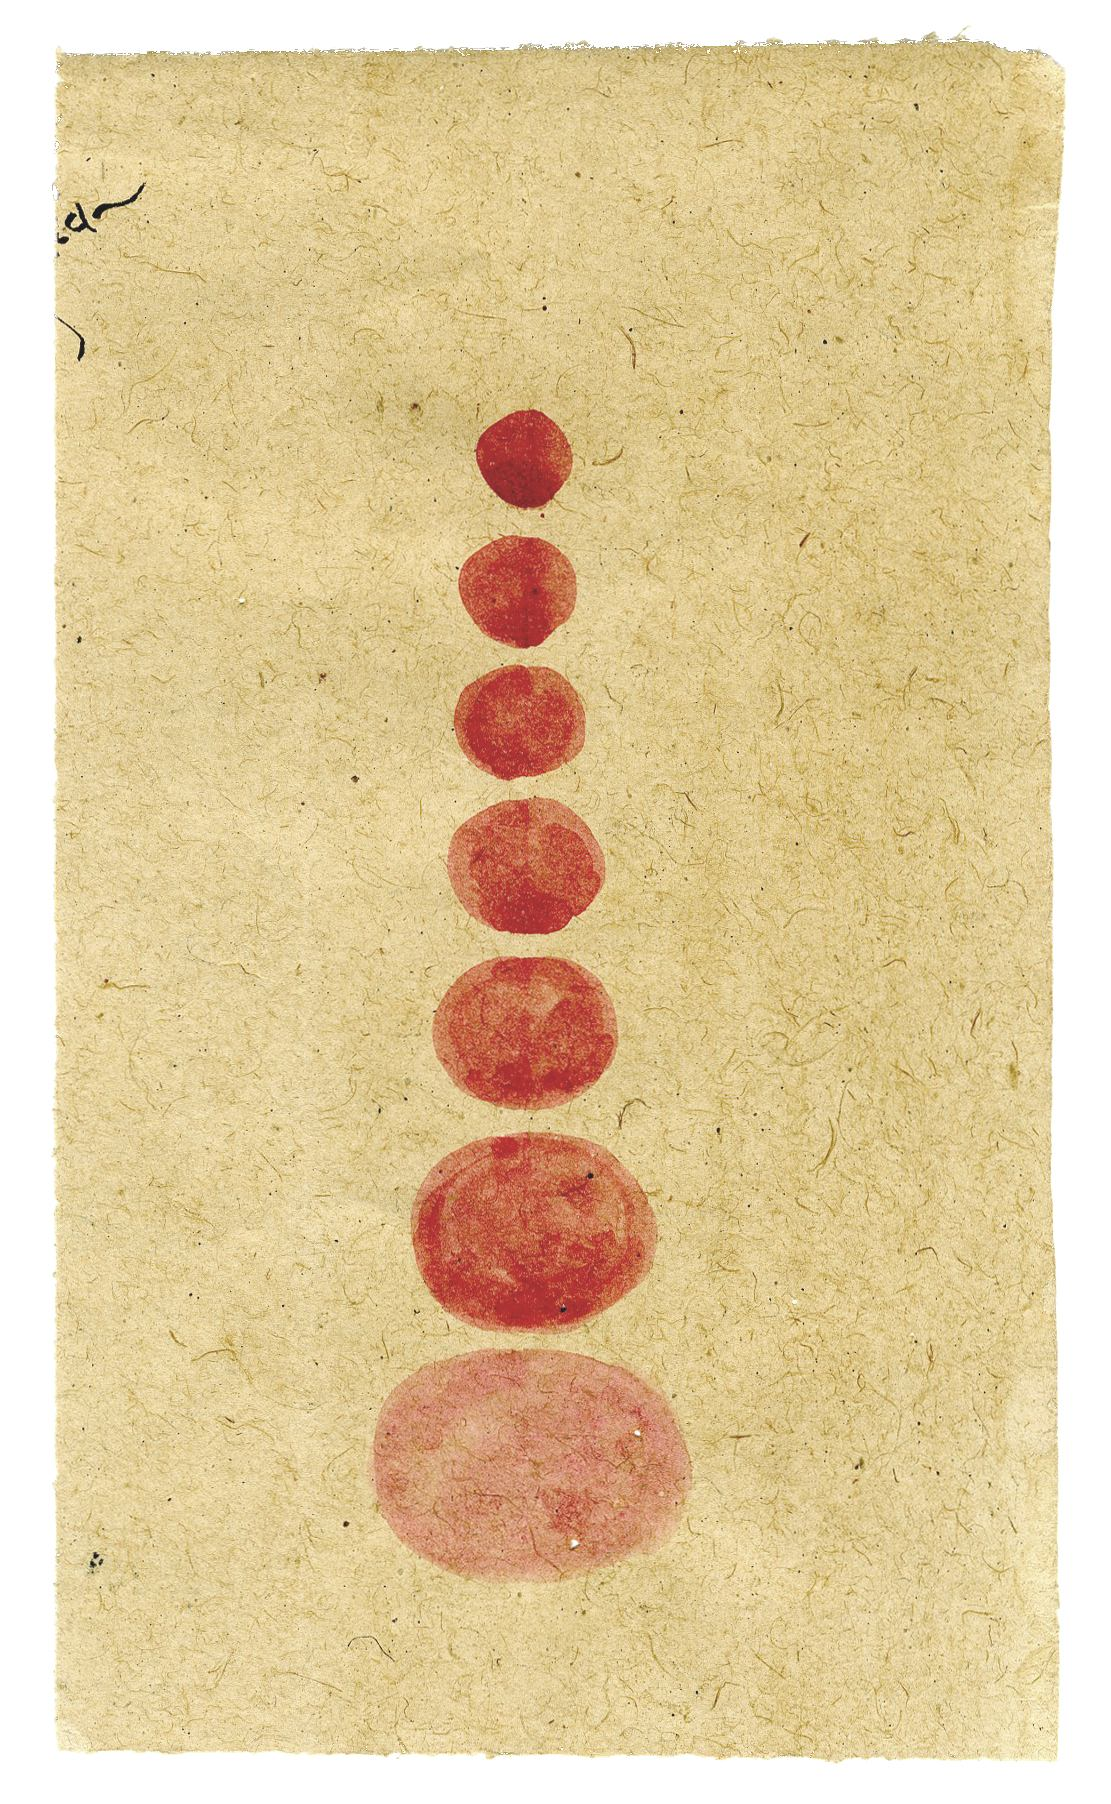 Tantra    Untitled  , ca. 1980-2014 Natural pigments (hand-ground colors: including minerals, mother of pearl, coral, tree resin, vegetable pastes) on vintage paper 8.5 x 5.08 inches 21.6 x 12.9 cm Tant 32